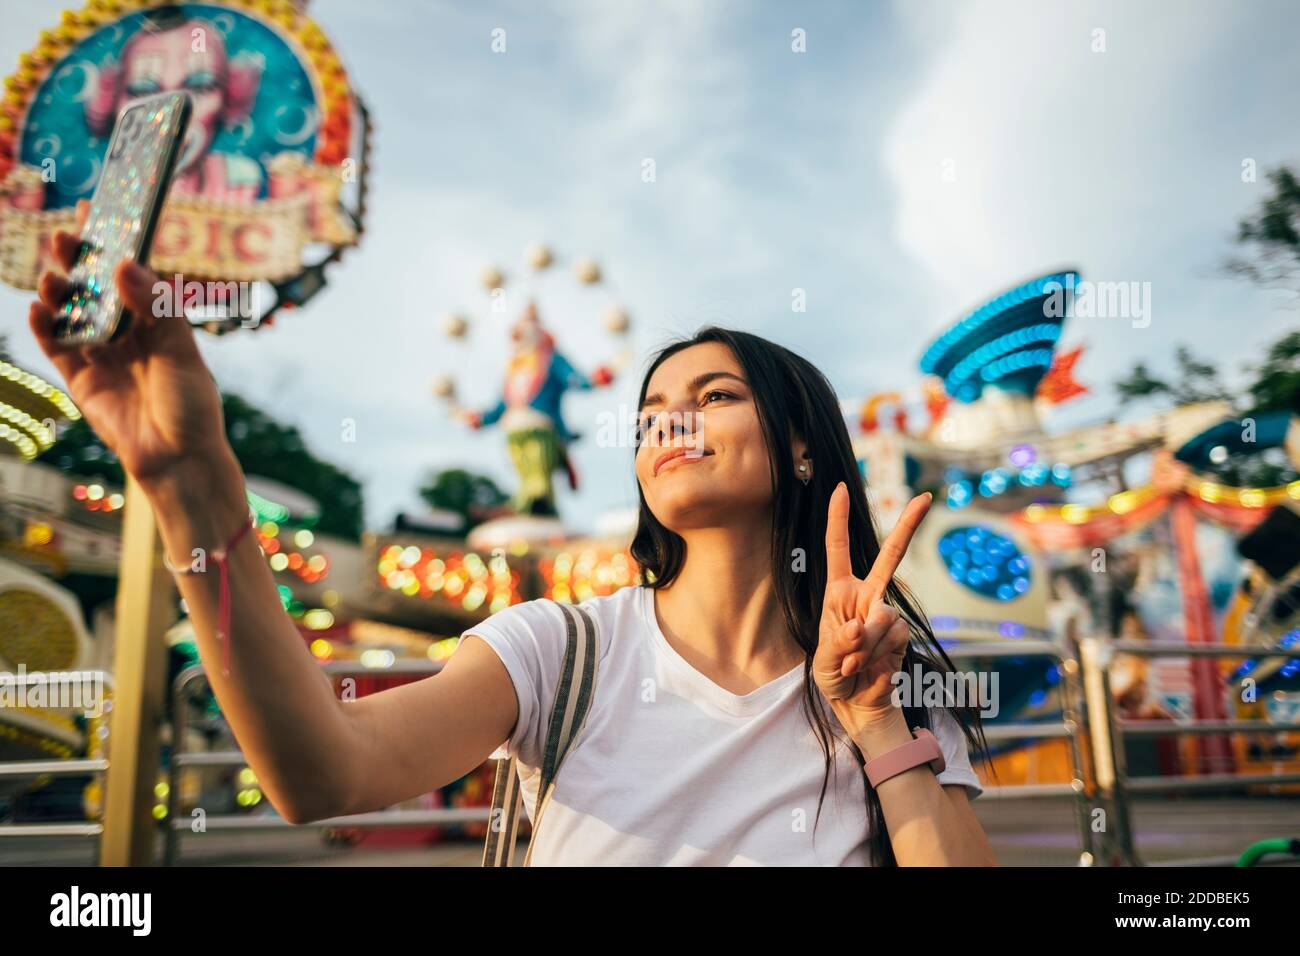 Beautiful young woman taking selfie through smart phone while gesturing peace sign at amusement park during summer Stock Photo